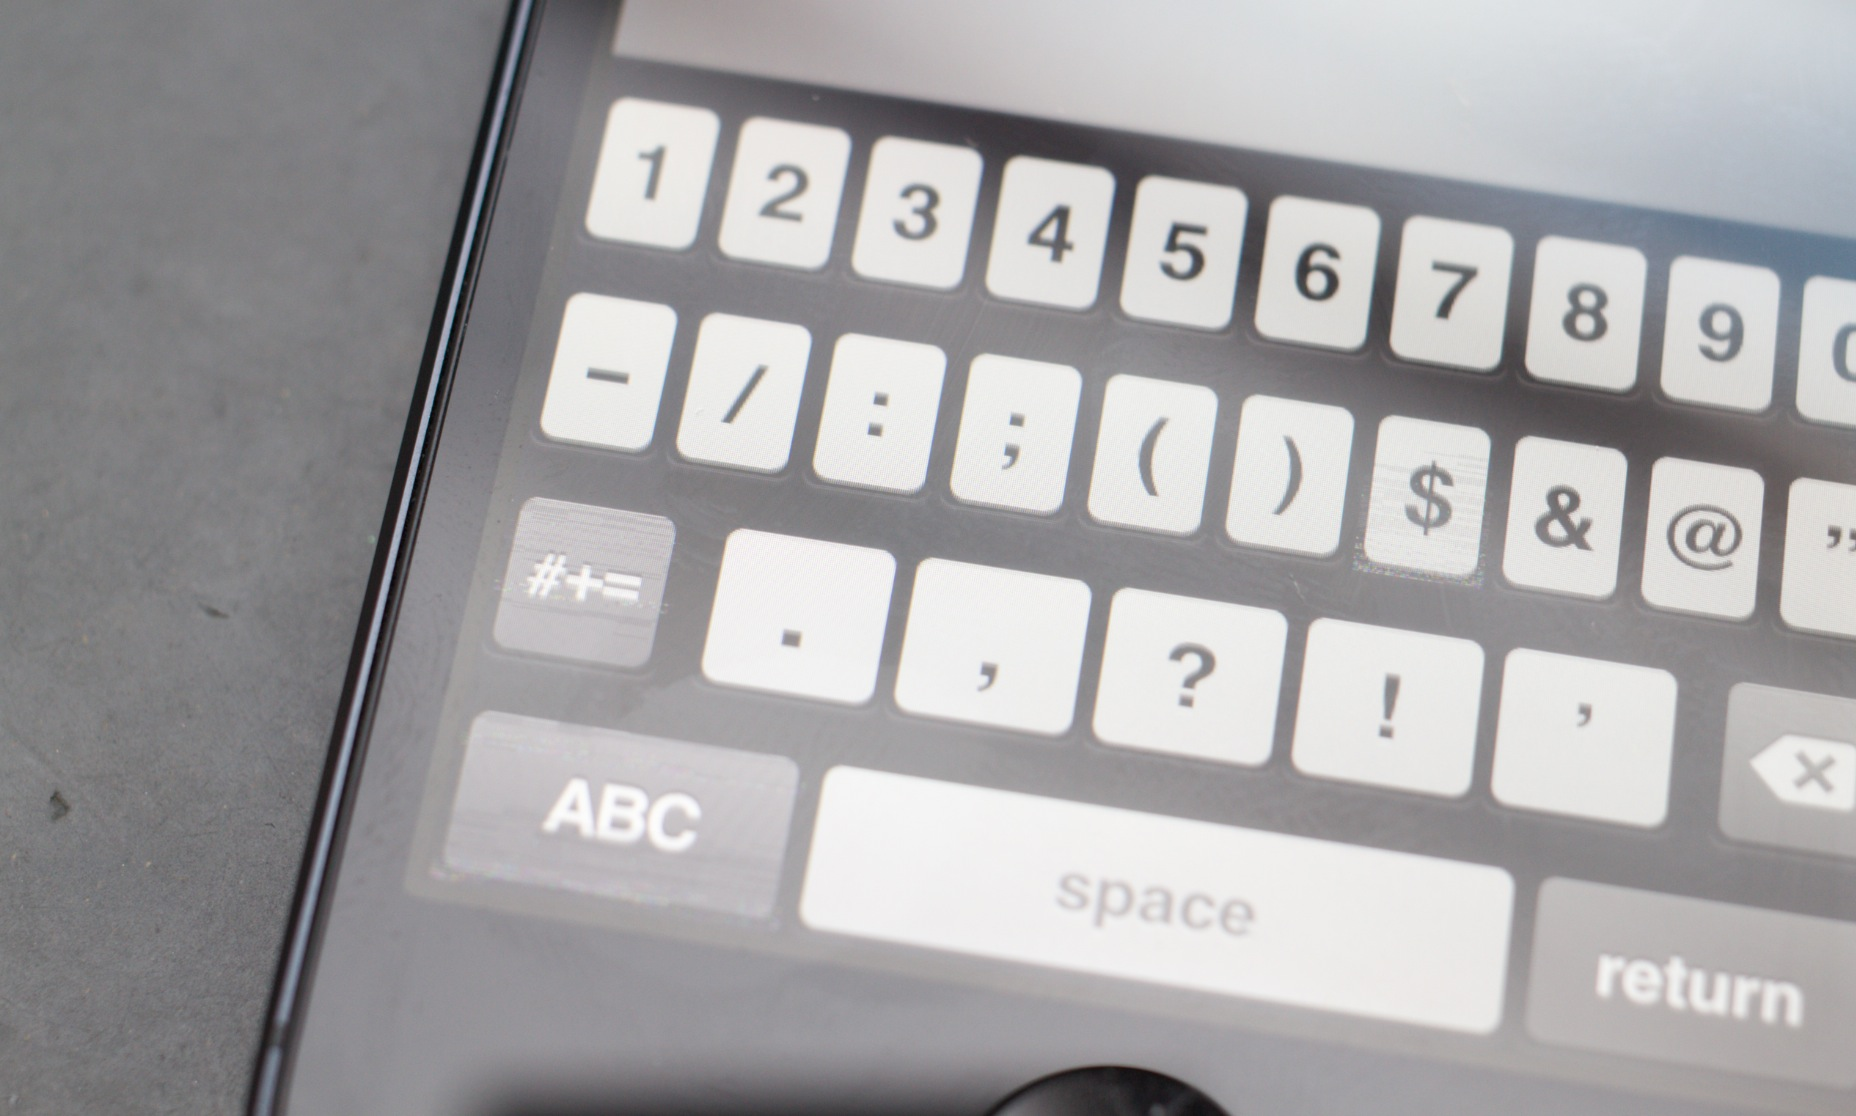 Graphics glitches seen on iPhone 5 screens and keyboards are likely a software issue, not hardware